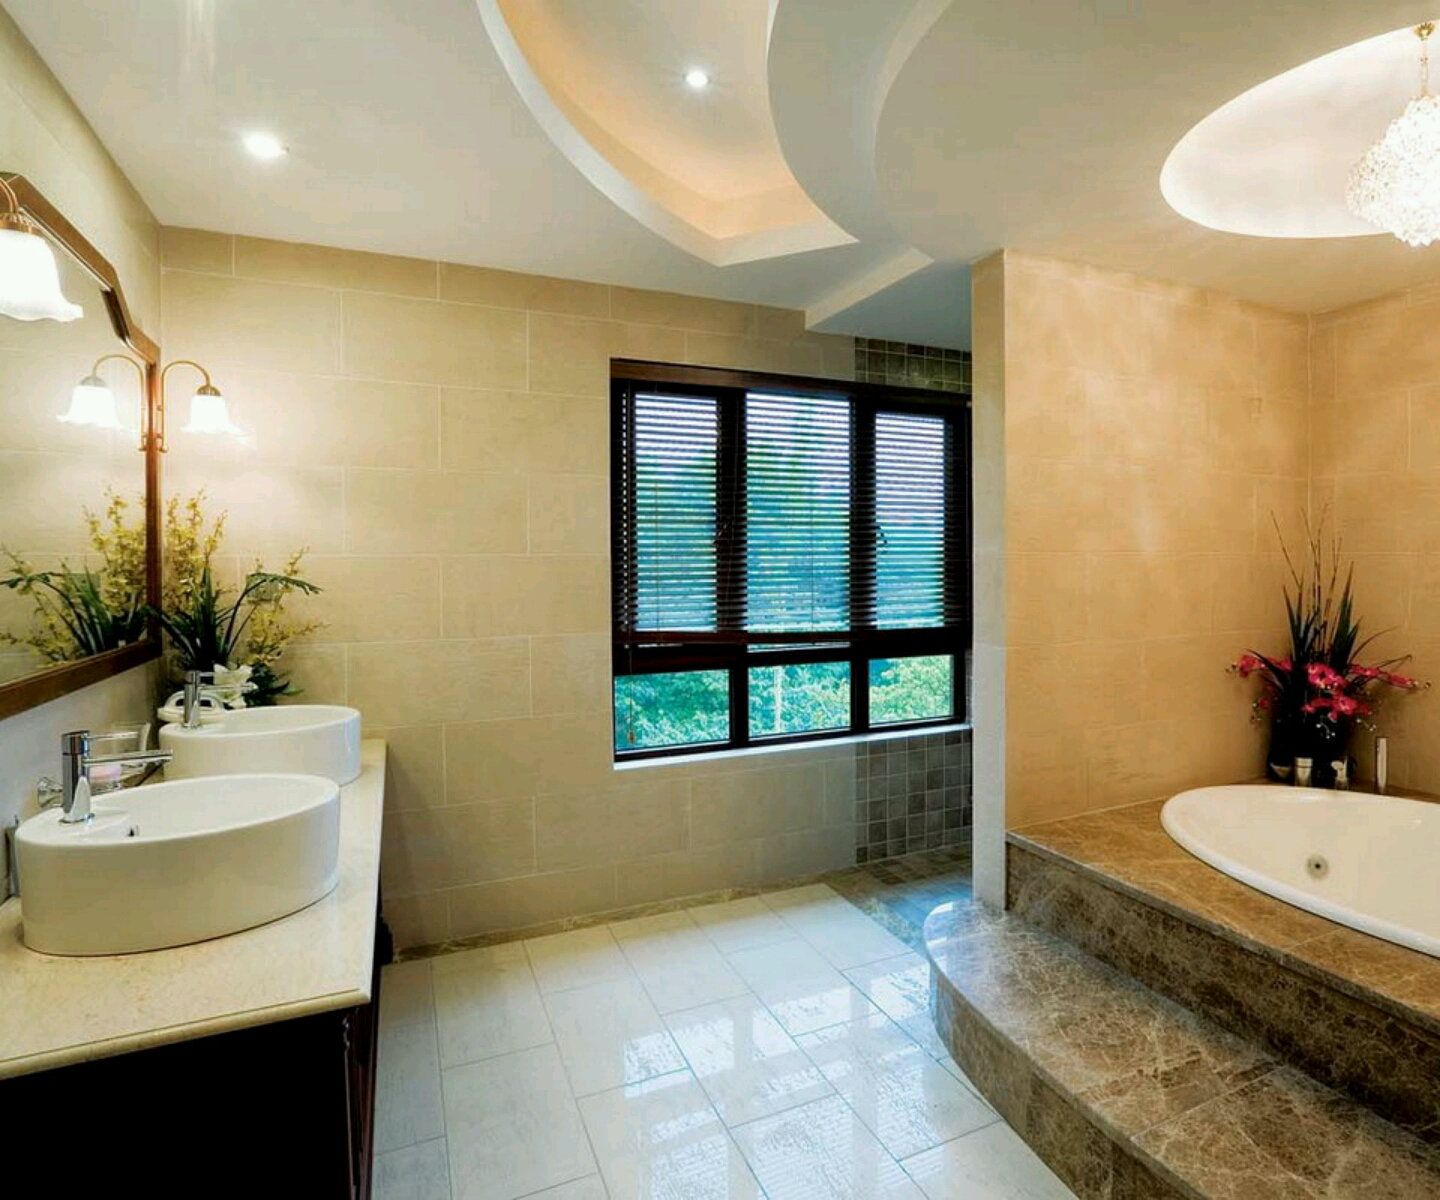 New home designs latest ultra modern washroom designs ideas for Washroom design ideas